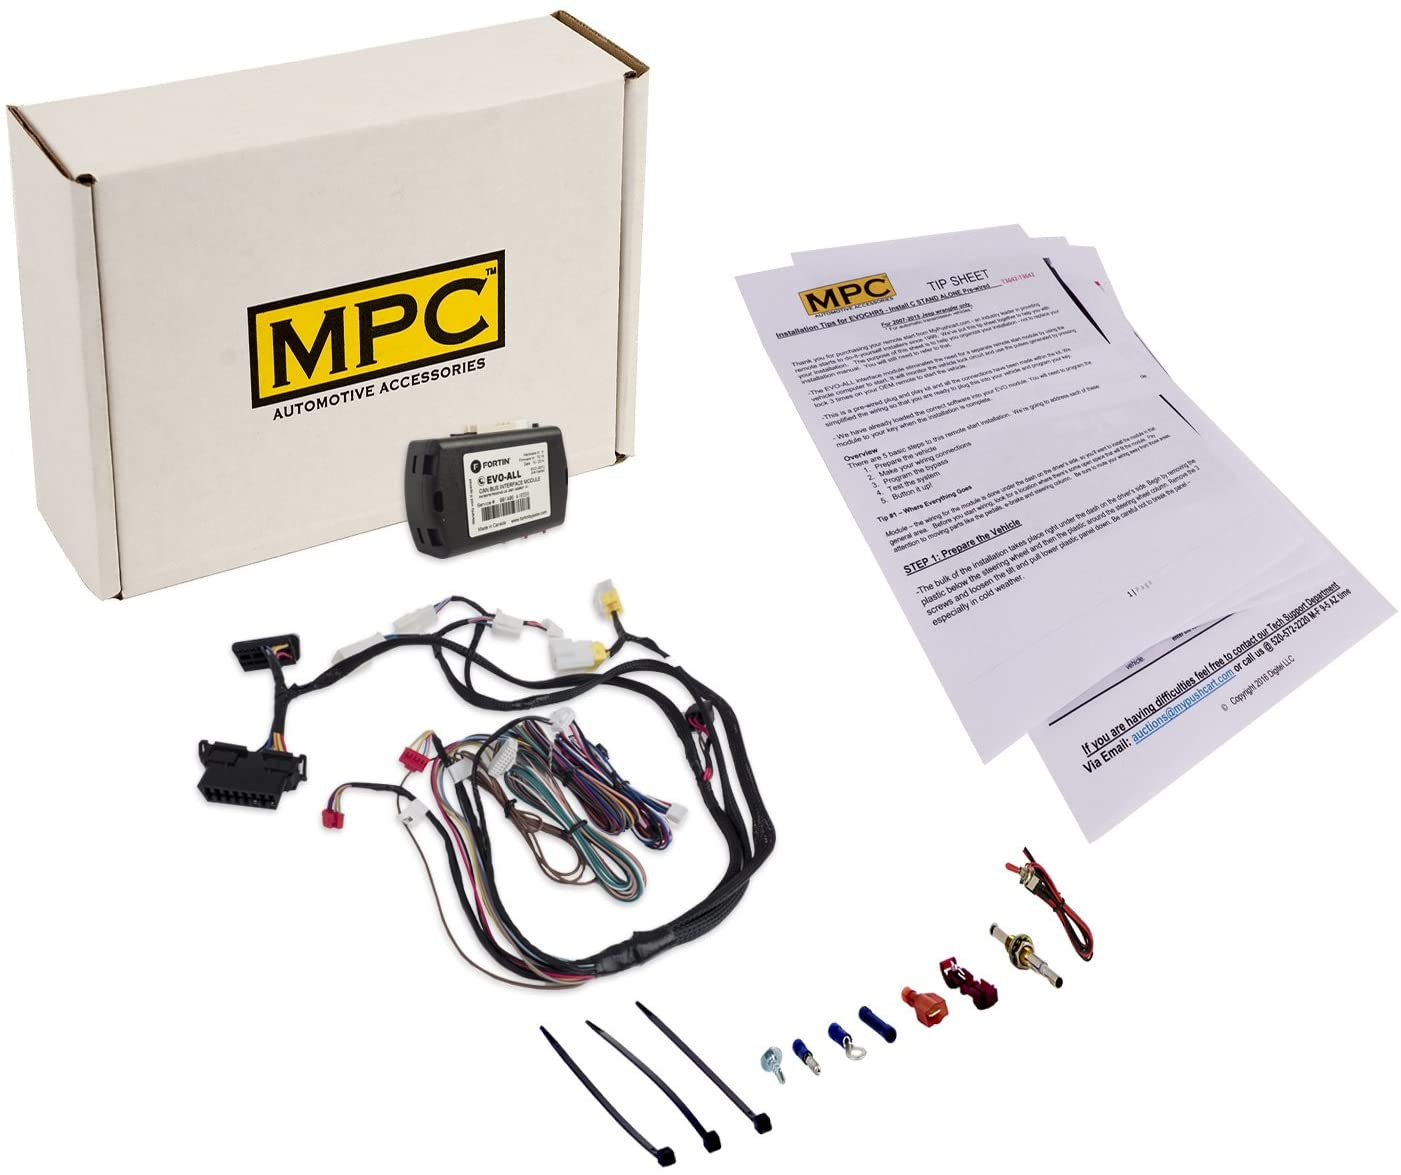 MPC Complete Factory Remote Activated Remote Start Kit for 2009-2016 Nissan GT-R - Push-to-Start - with T-Harness